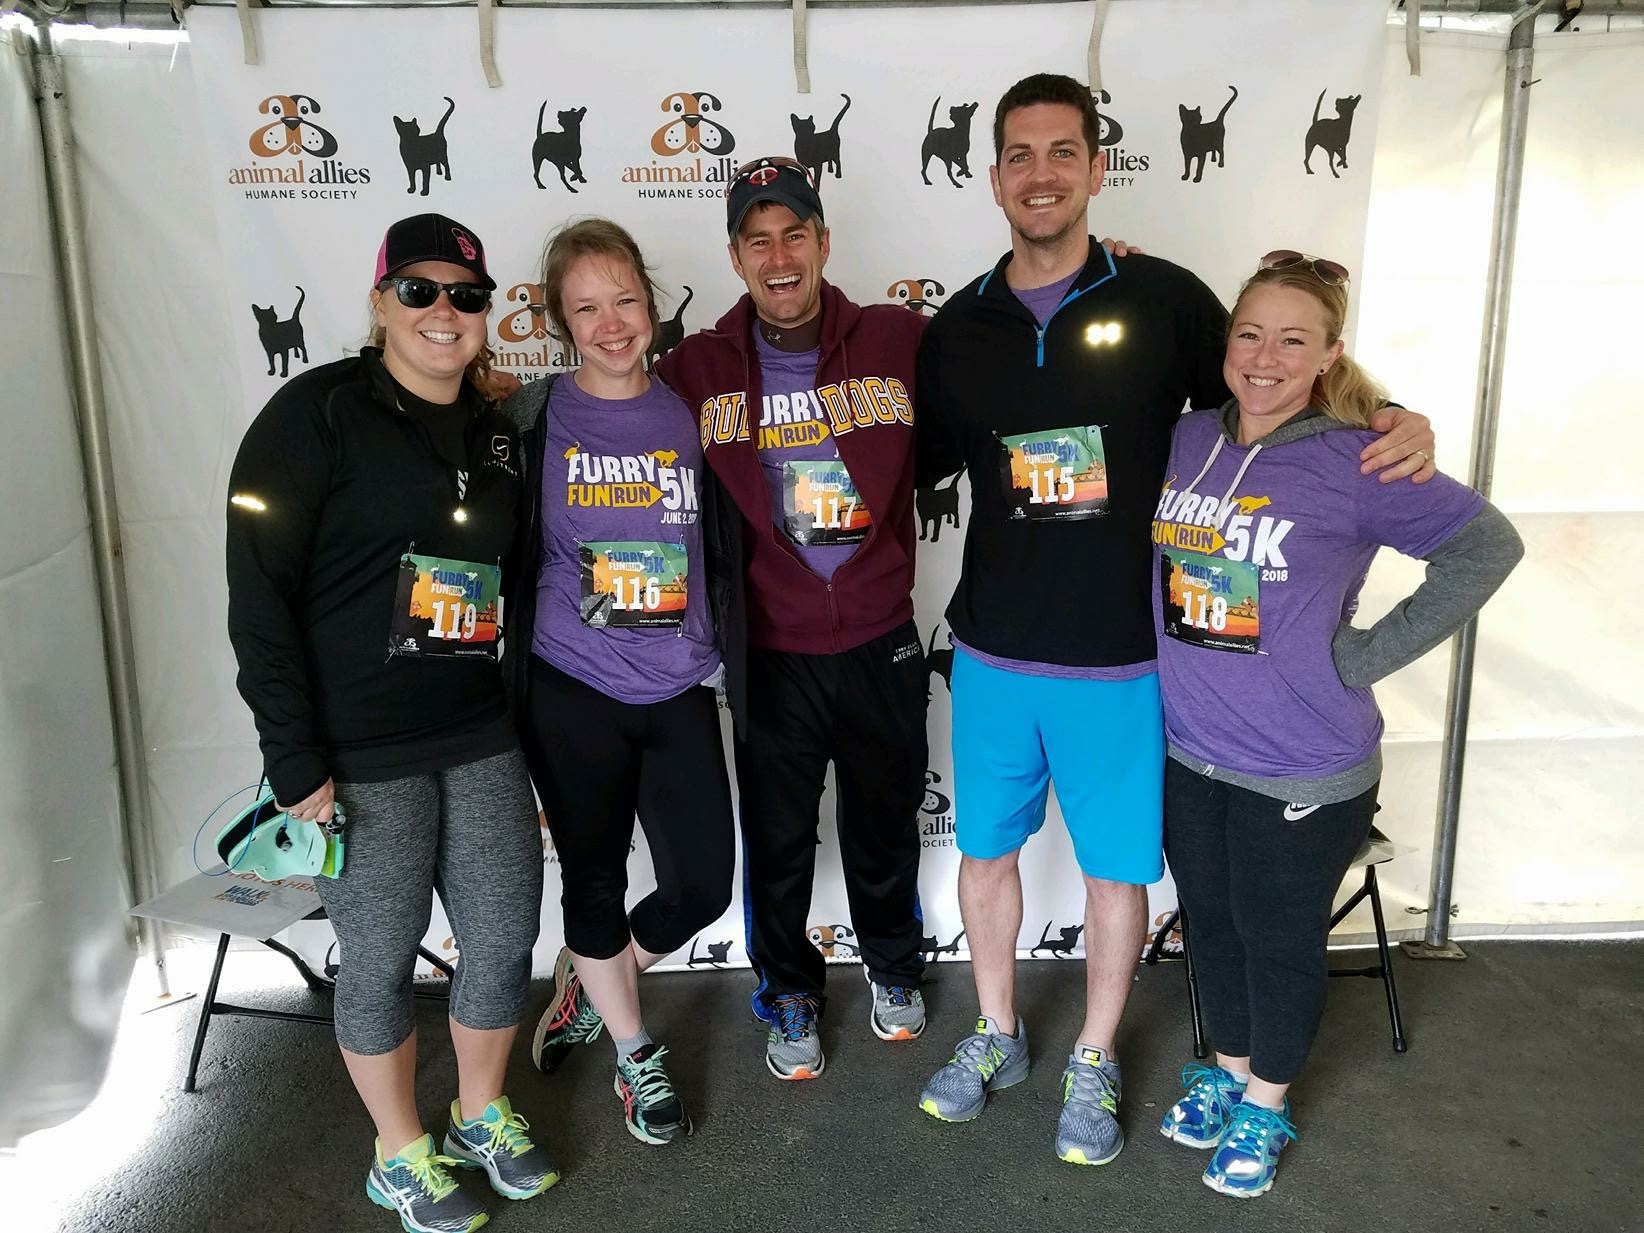 Furry Fun Run 5k by Animal Allies